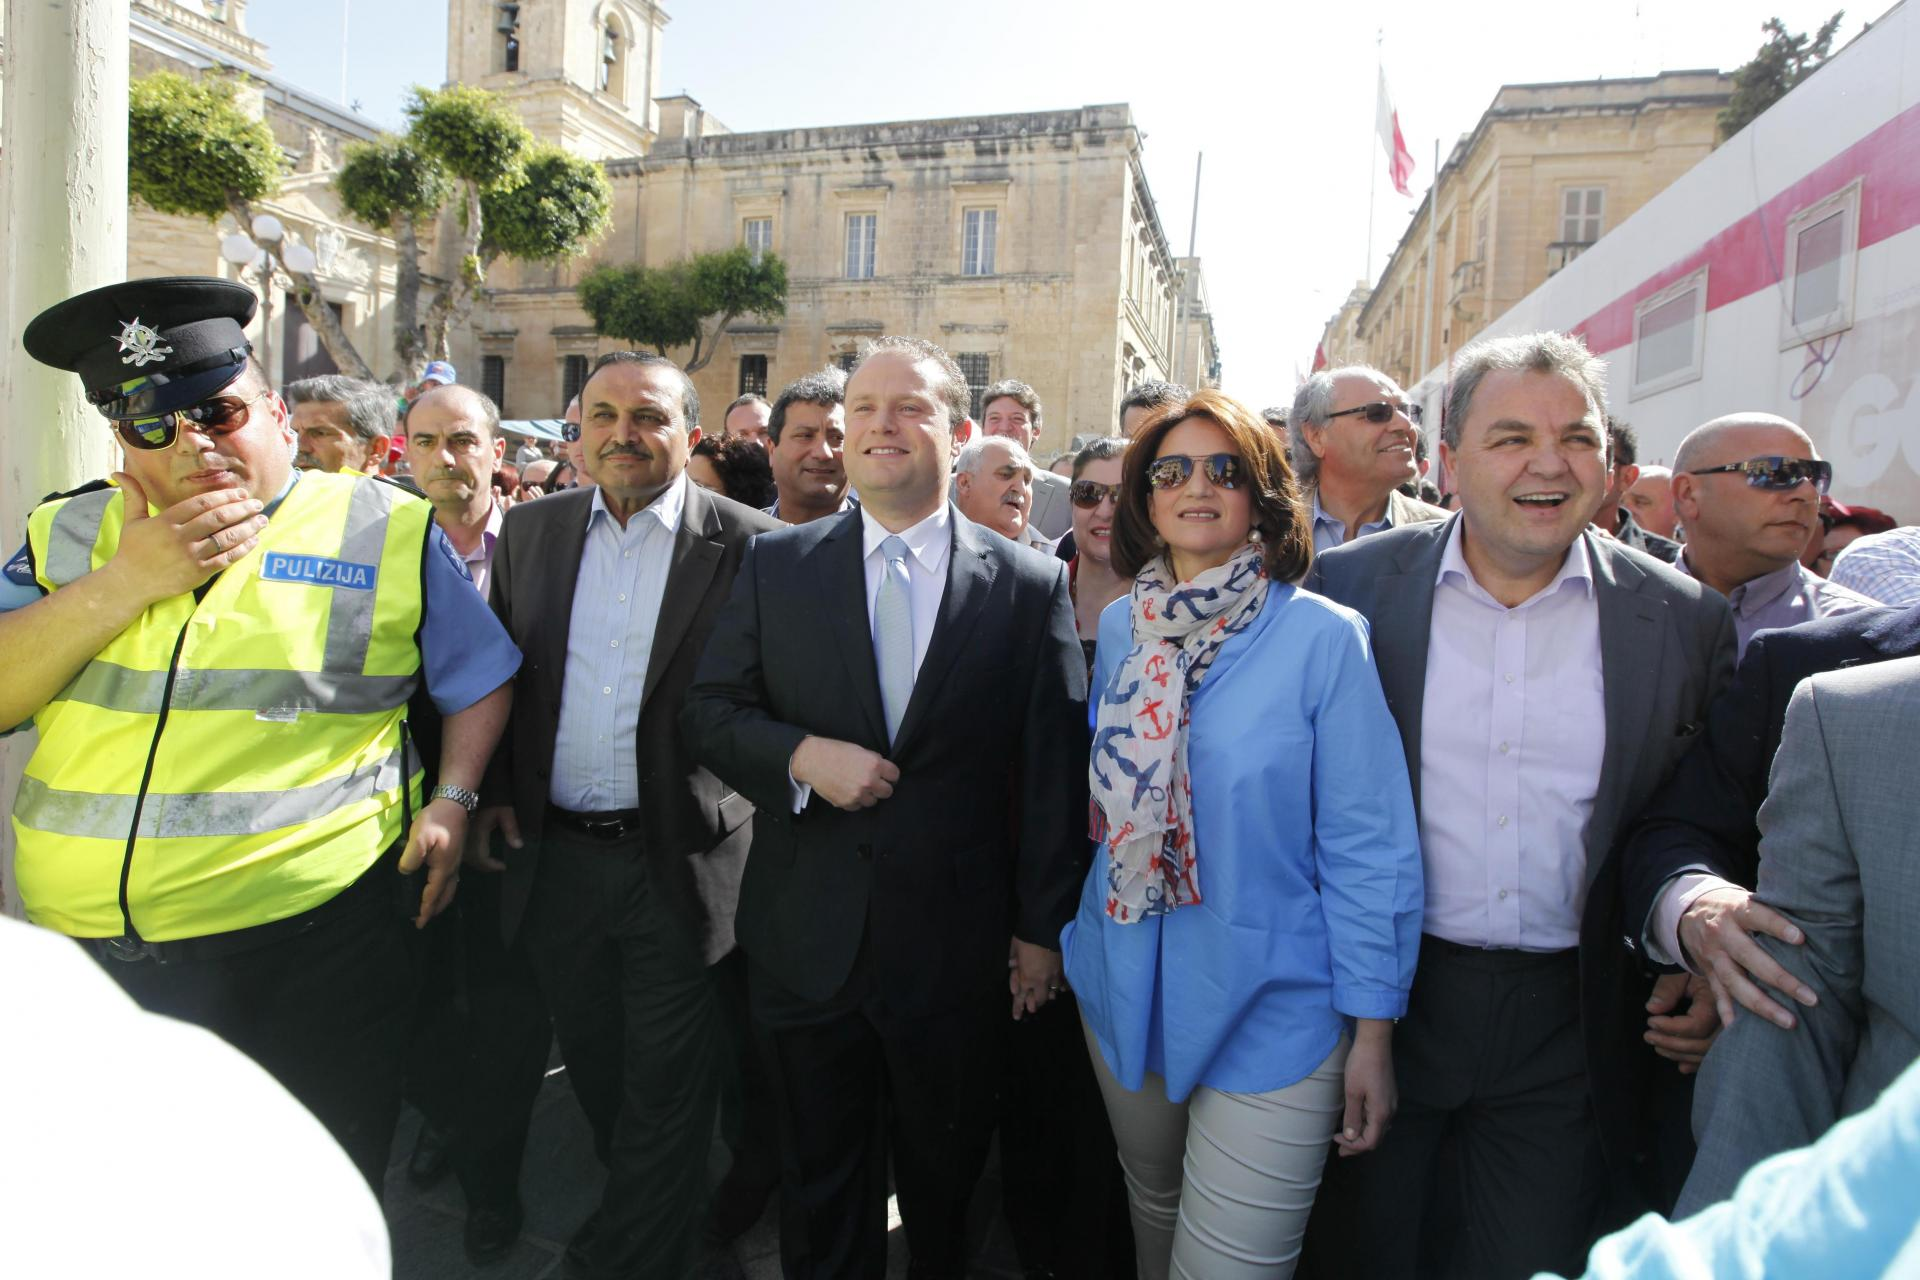 Joseph Muscat and his wife Michelle lead May Day celebrations in 2012, flanked by party deputy leaders Toni Abela (left) and Anglu Farrugia (right).